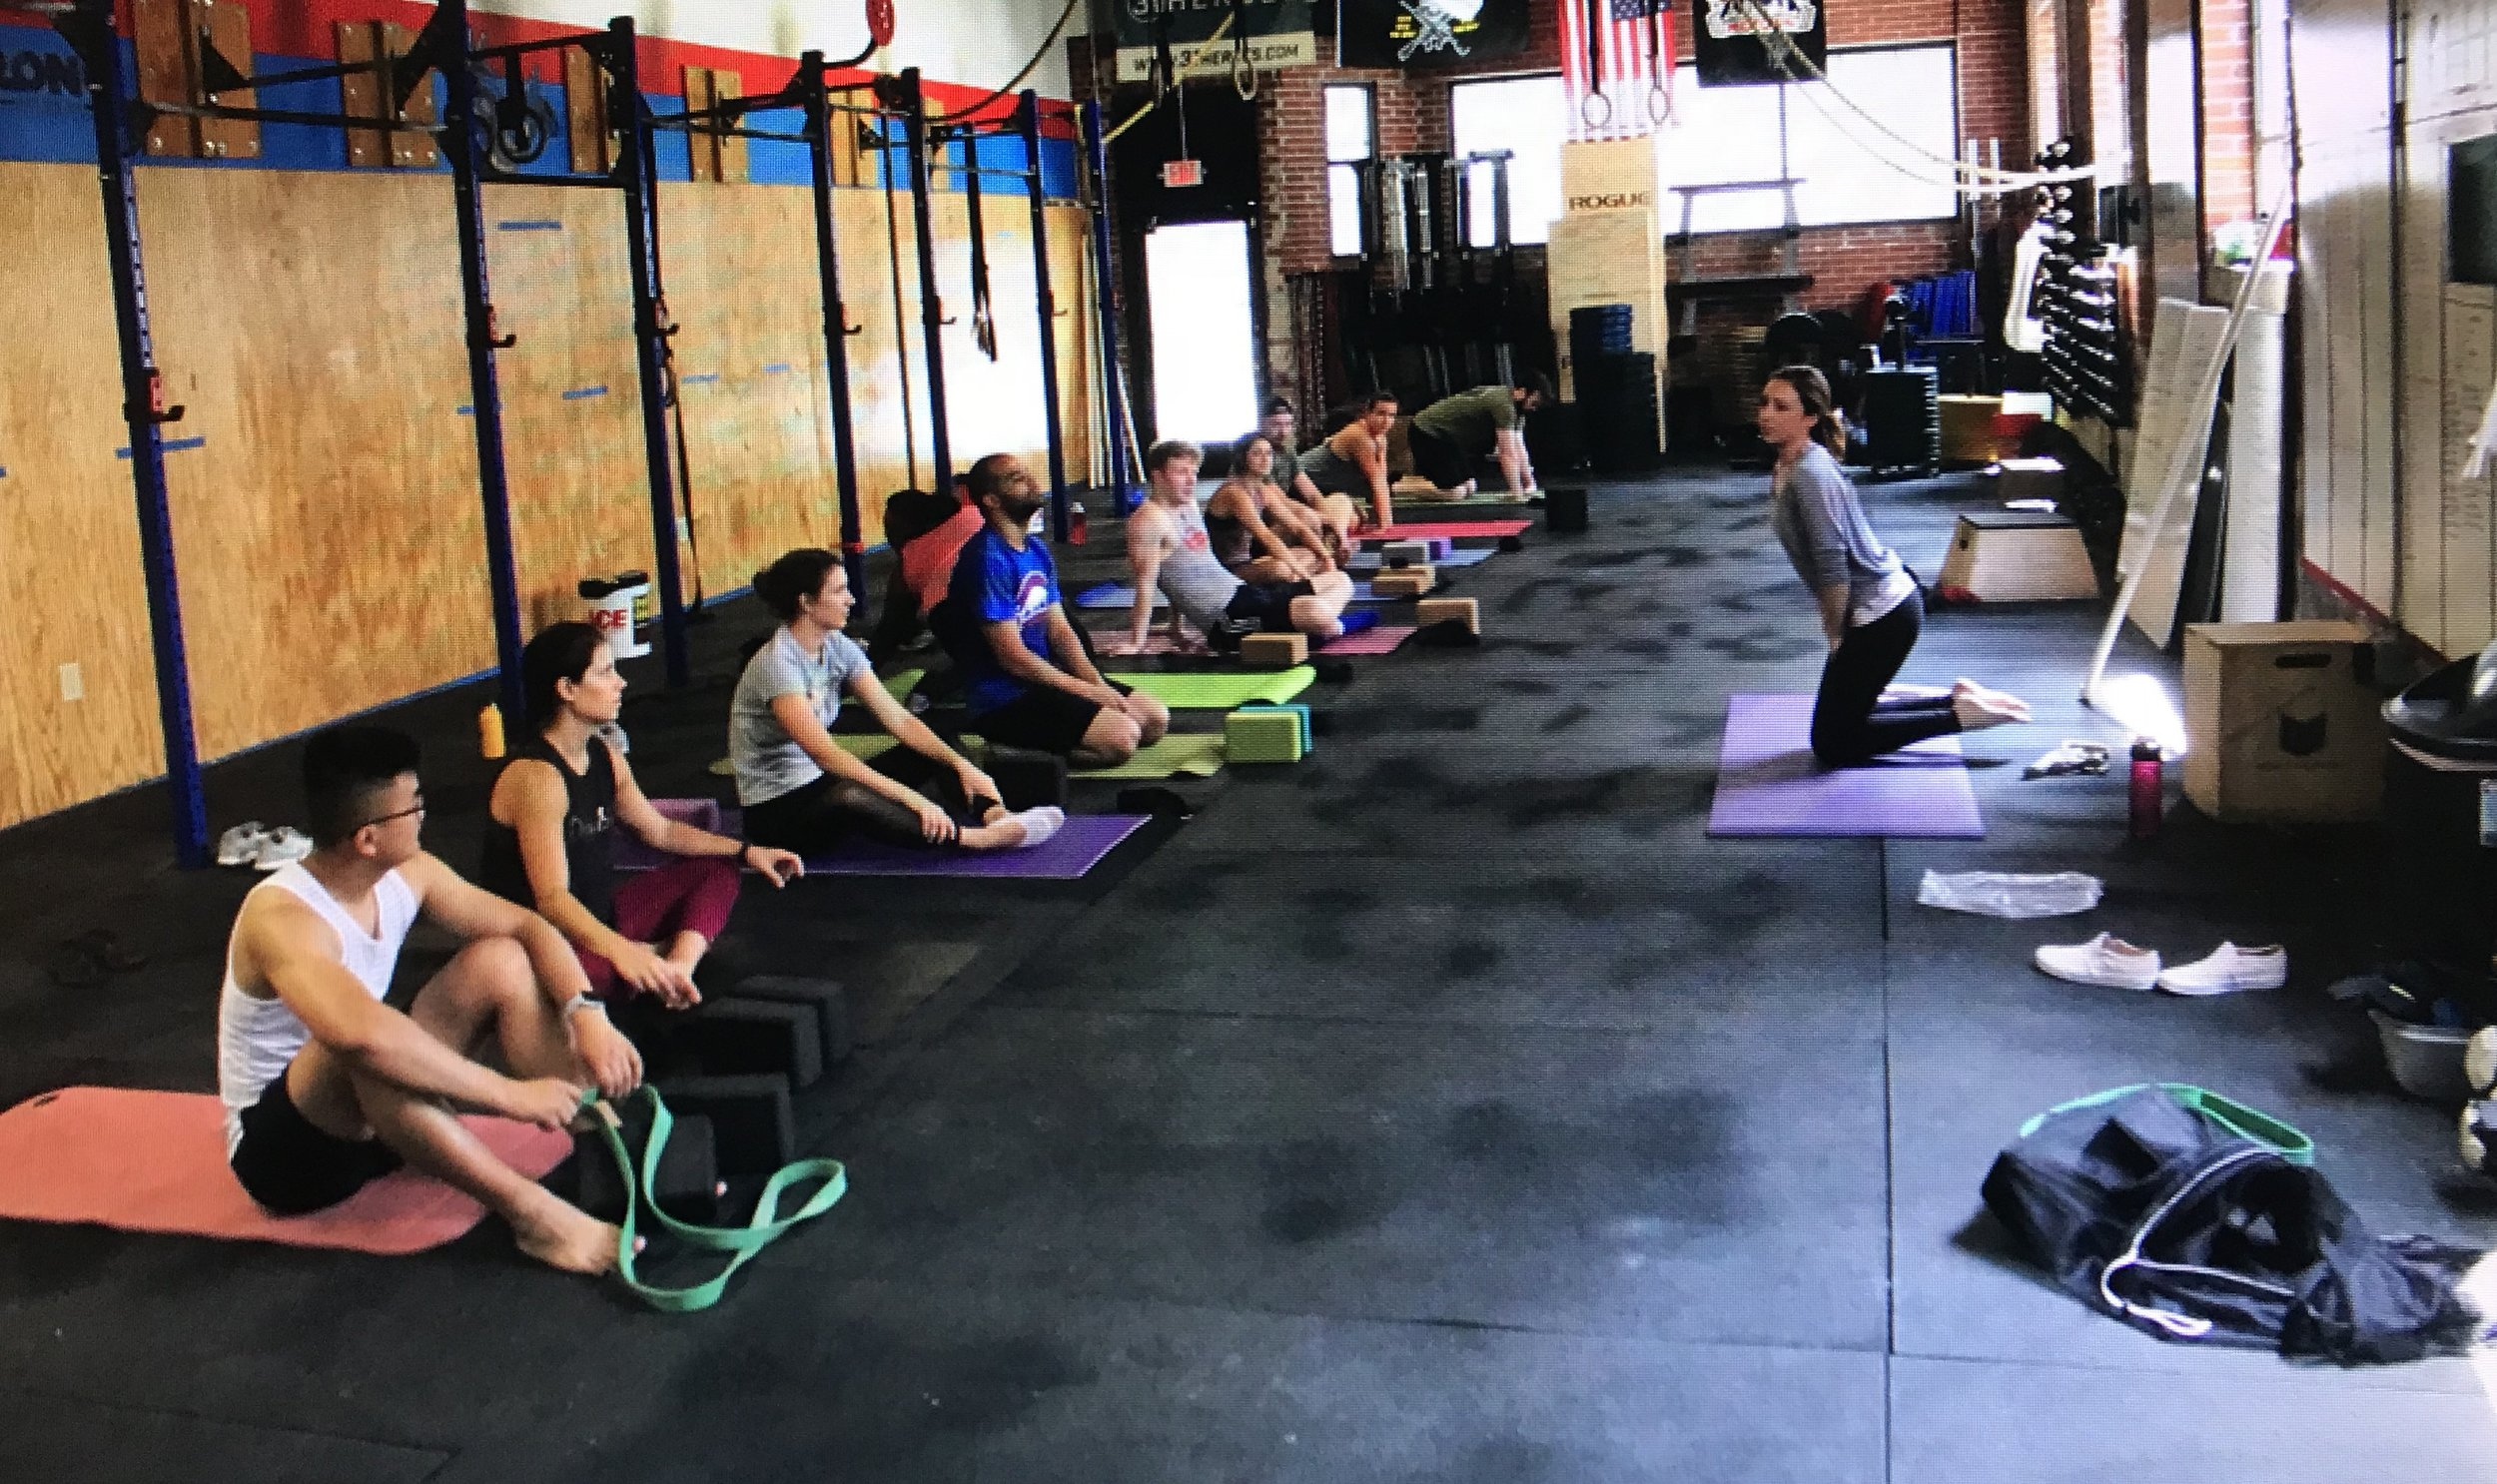 Weekly classes at CrossFit Midtown Atlanta - Love watching these yogi's transform over the years!!